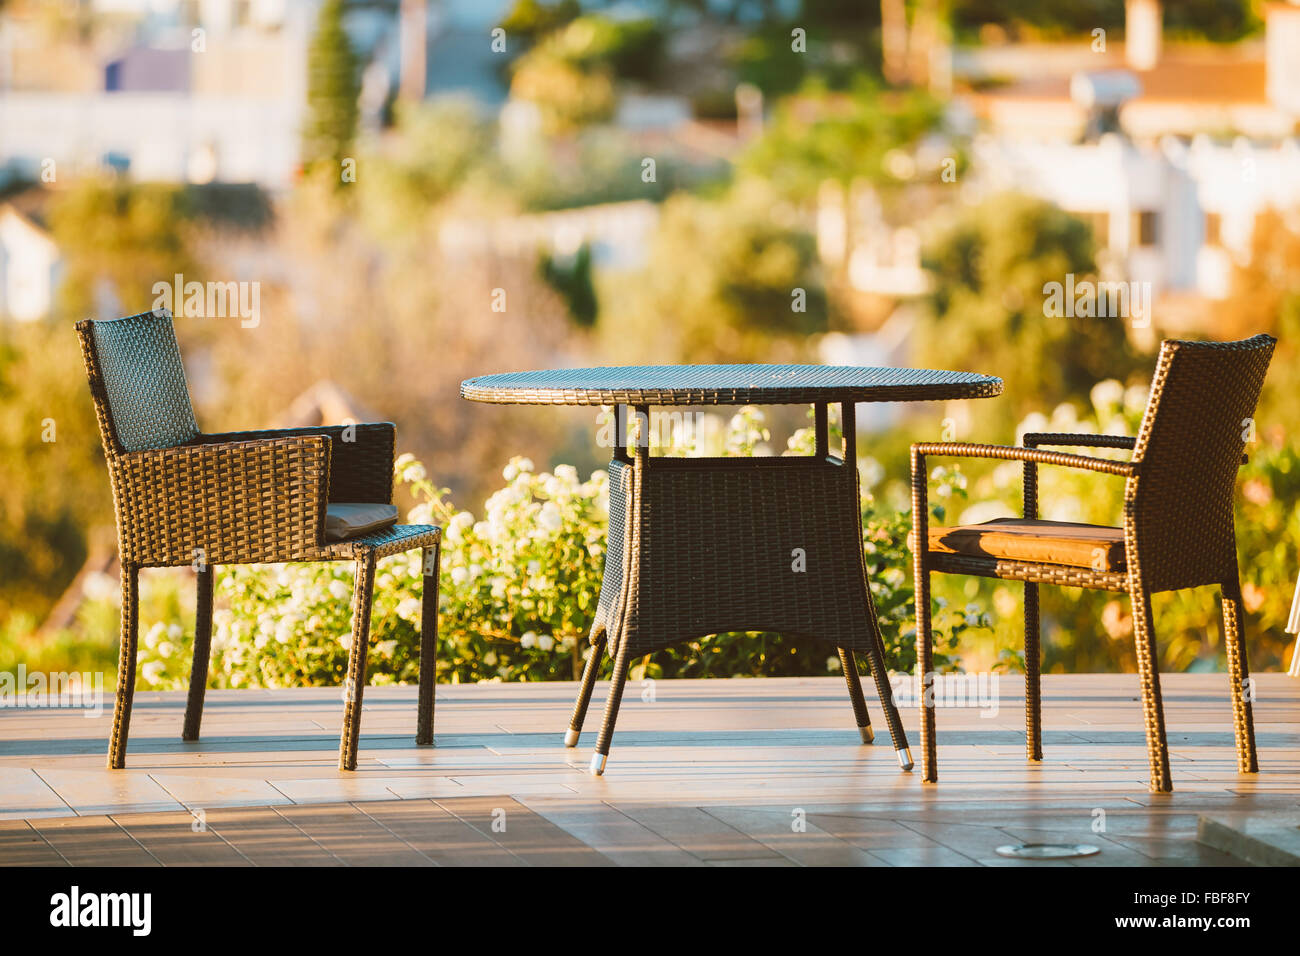 patio table evening stockfotos patio table evening bilder alamy. Black Bedroom Furniture Sets. Home Design Ideas